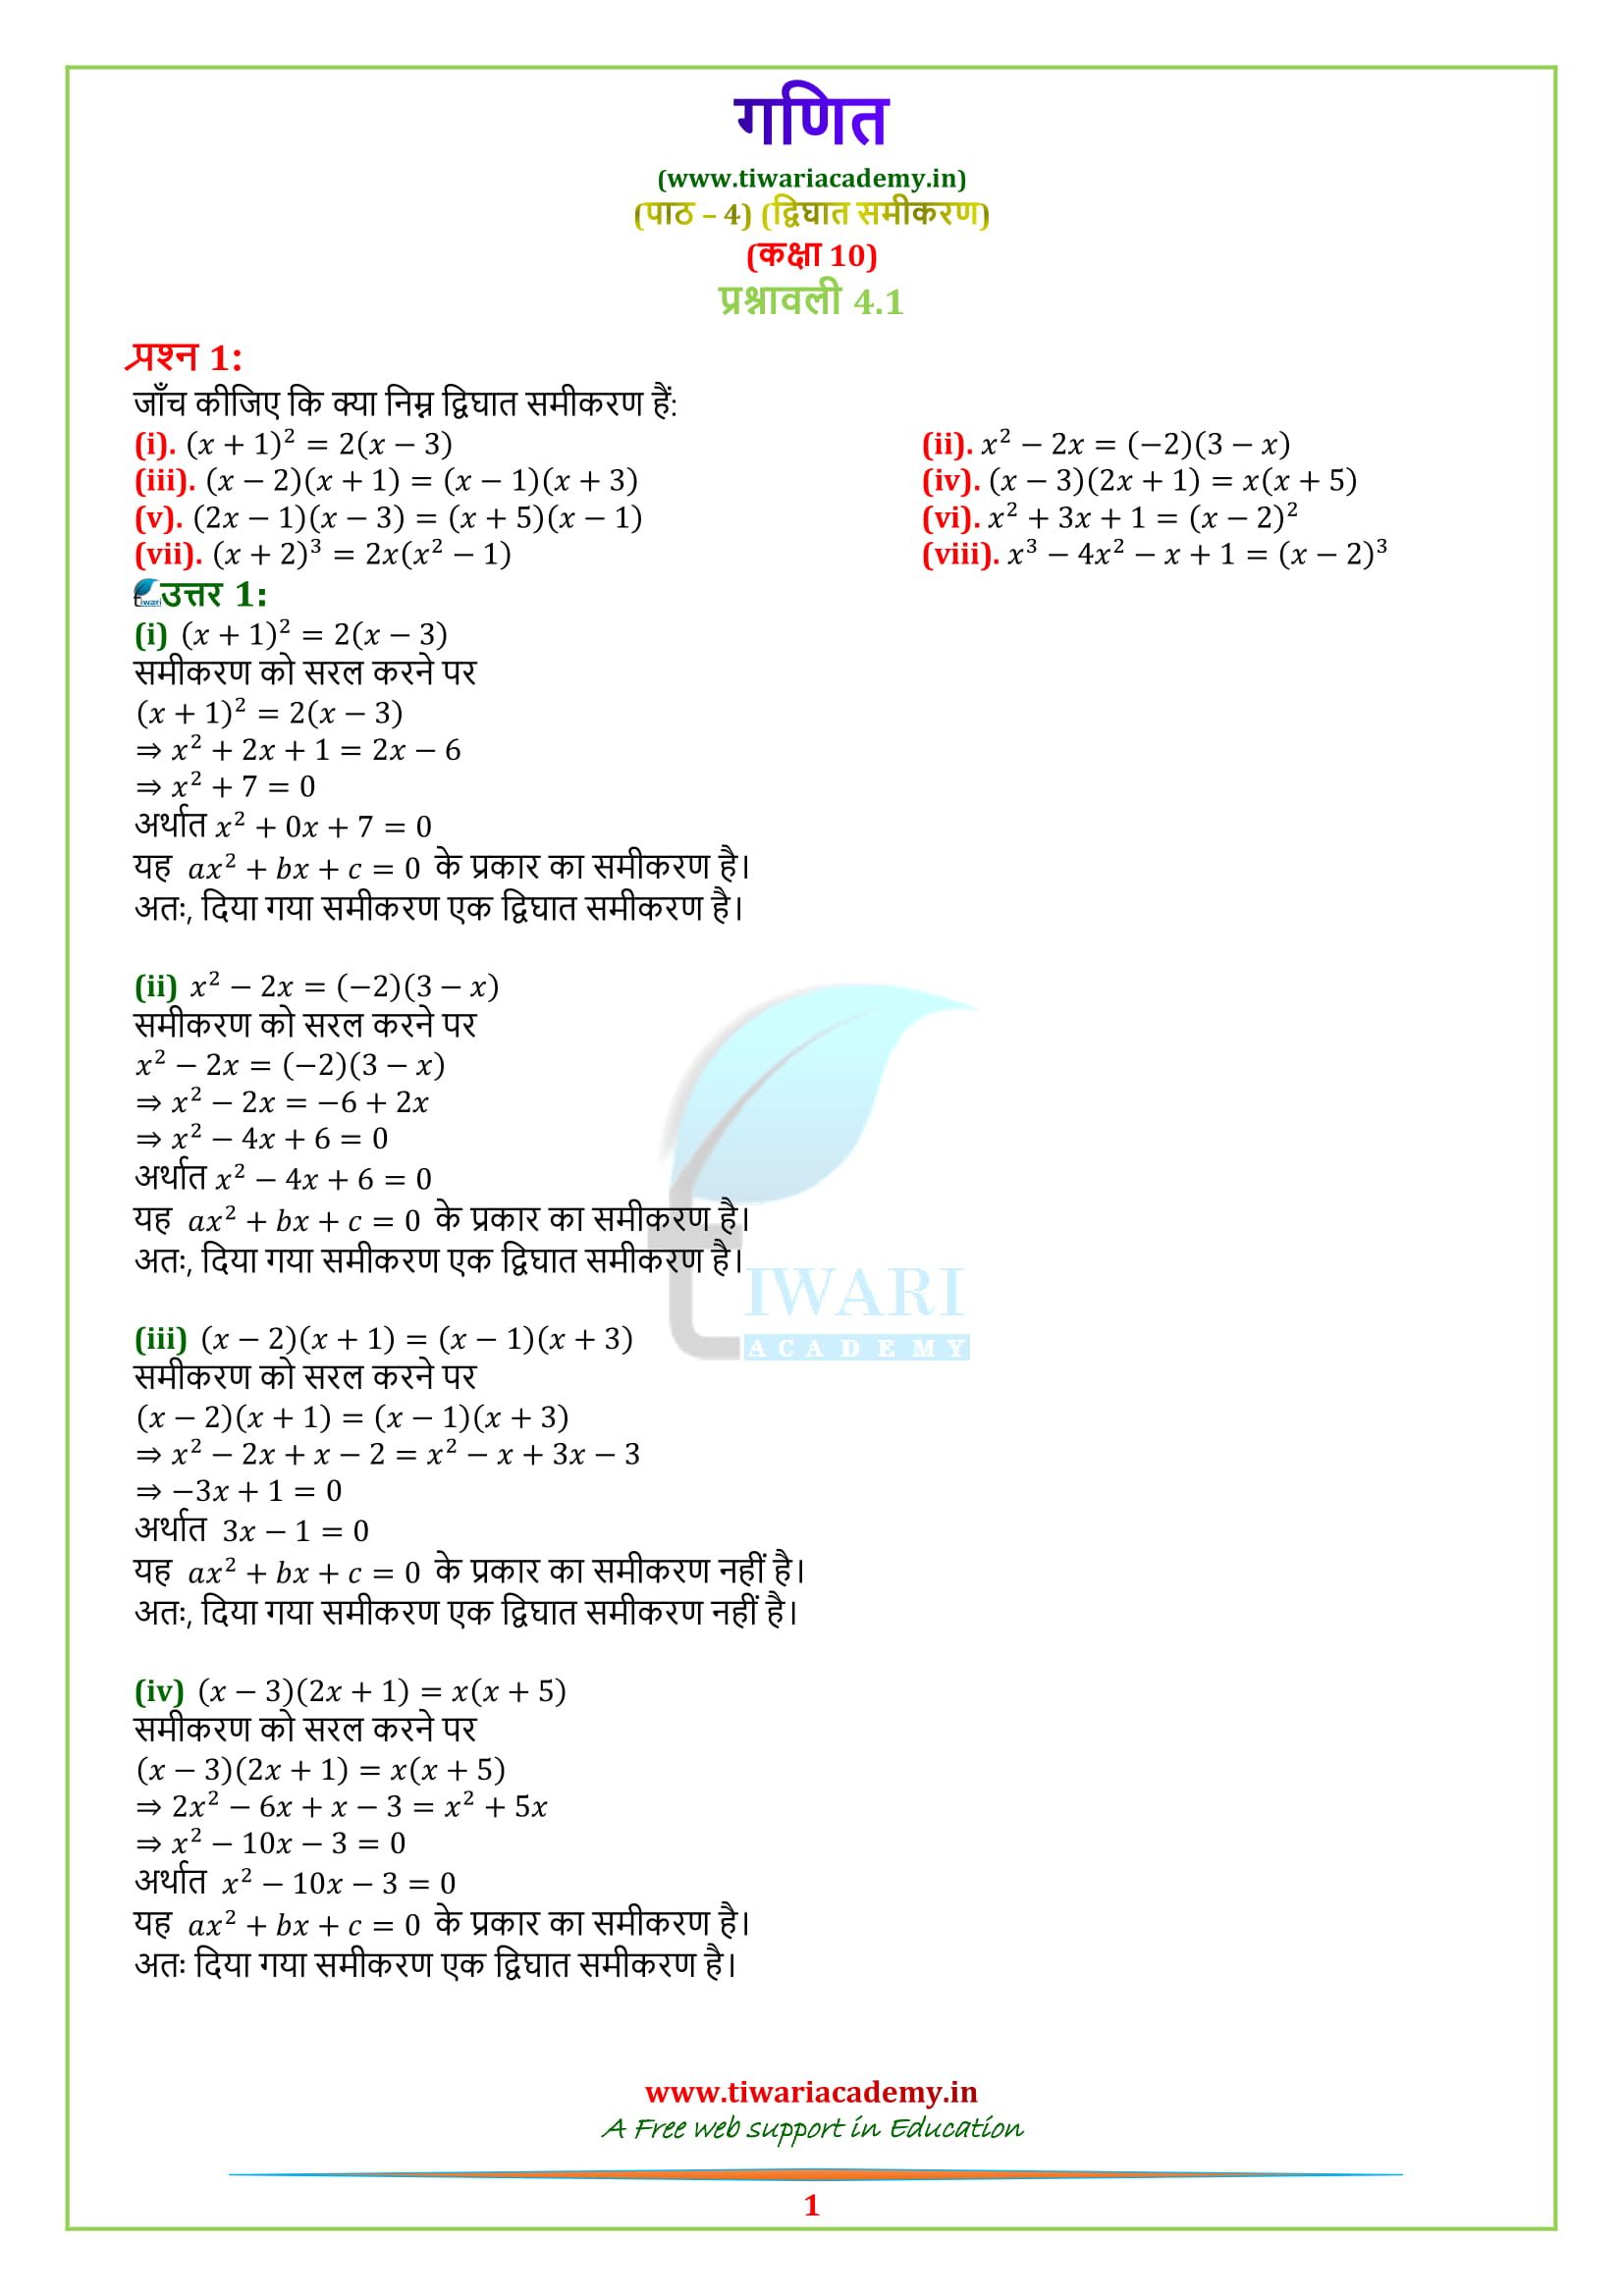 NCERT Sols for class 10 maths exercise 4.1 in hindi medium